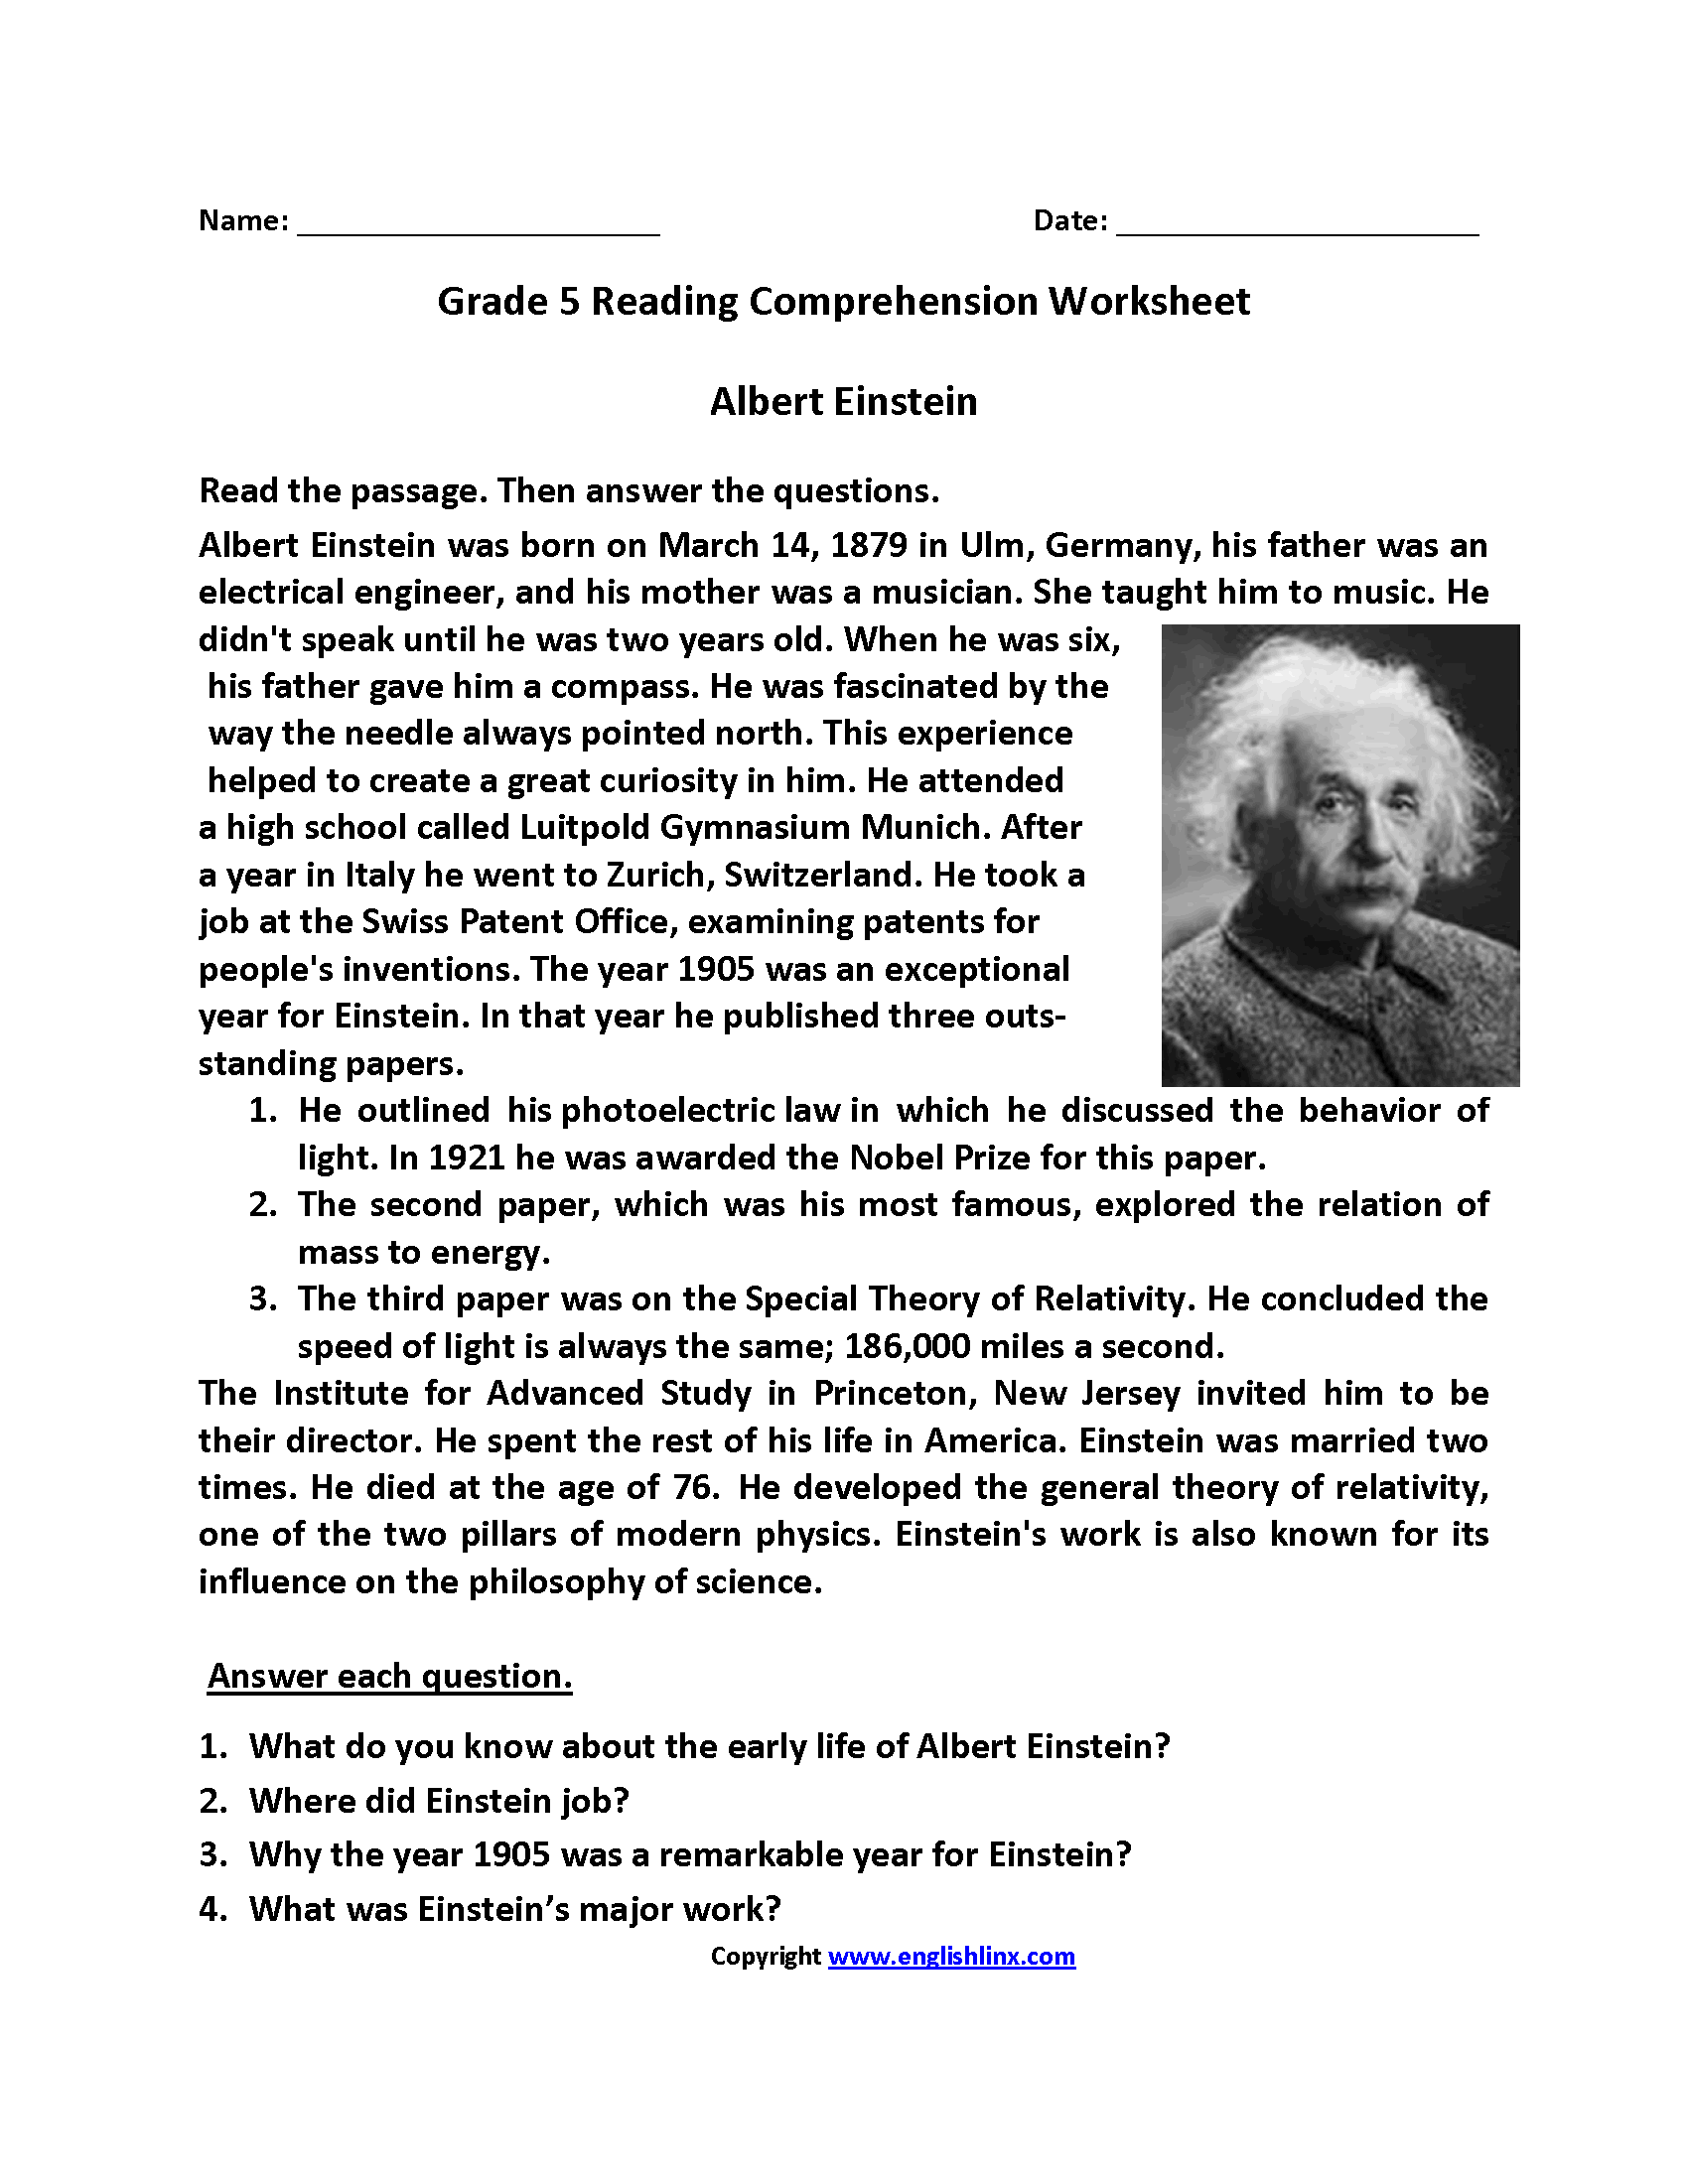 Albert Einstein Fifth Grade Reading Worksheets